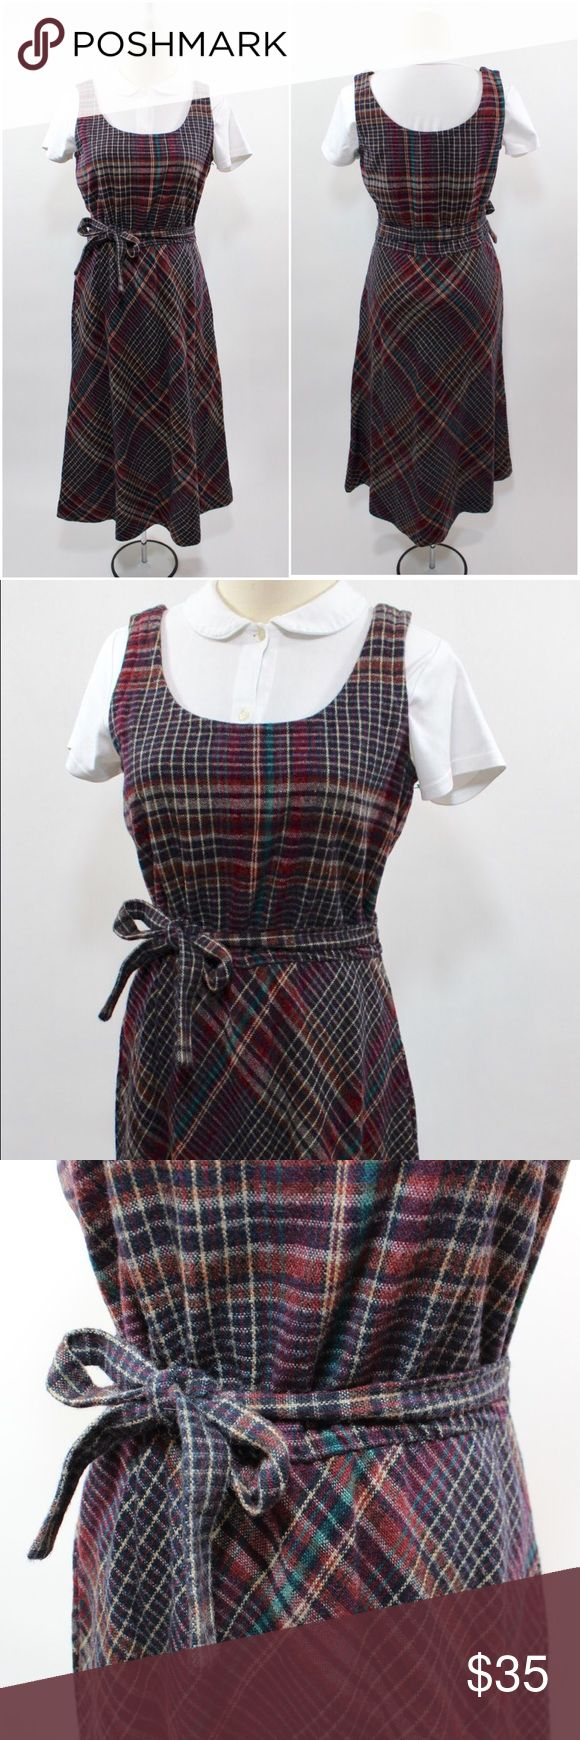 "1970's Wool Tartan Plaid Jumper Dress A women's vintage 1970's gray and burgundy red tartan plaid wool jumper dress with an elastic waist and tie belt to cinch. This dress also has pockets.  -+- Condition -+- Excellent vintage condition with no flaws   -+- Measurements -+- (already doubled where necessary) Bust, from pit to pit - 36"" Waist - 31""-34"", but can be made smaller with the tie belt. Hips -  42"" Length - 45"" Material/Tag - Act I - Wool - Vintage size 9/10 Vintage Dresses Midi"